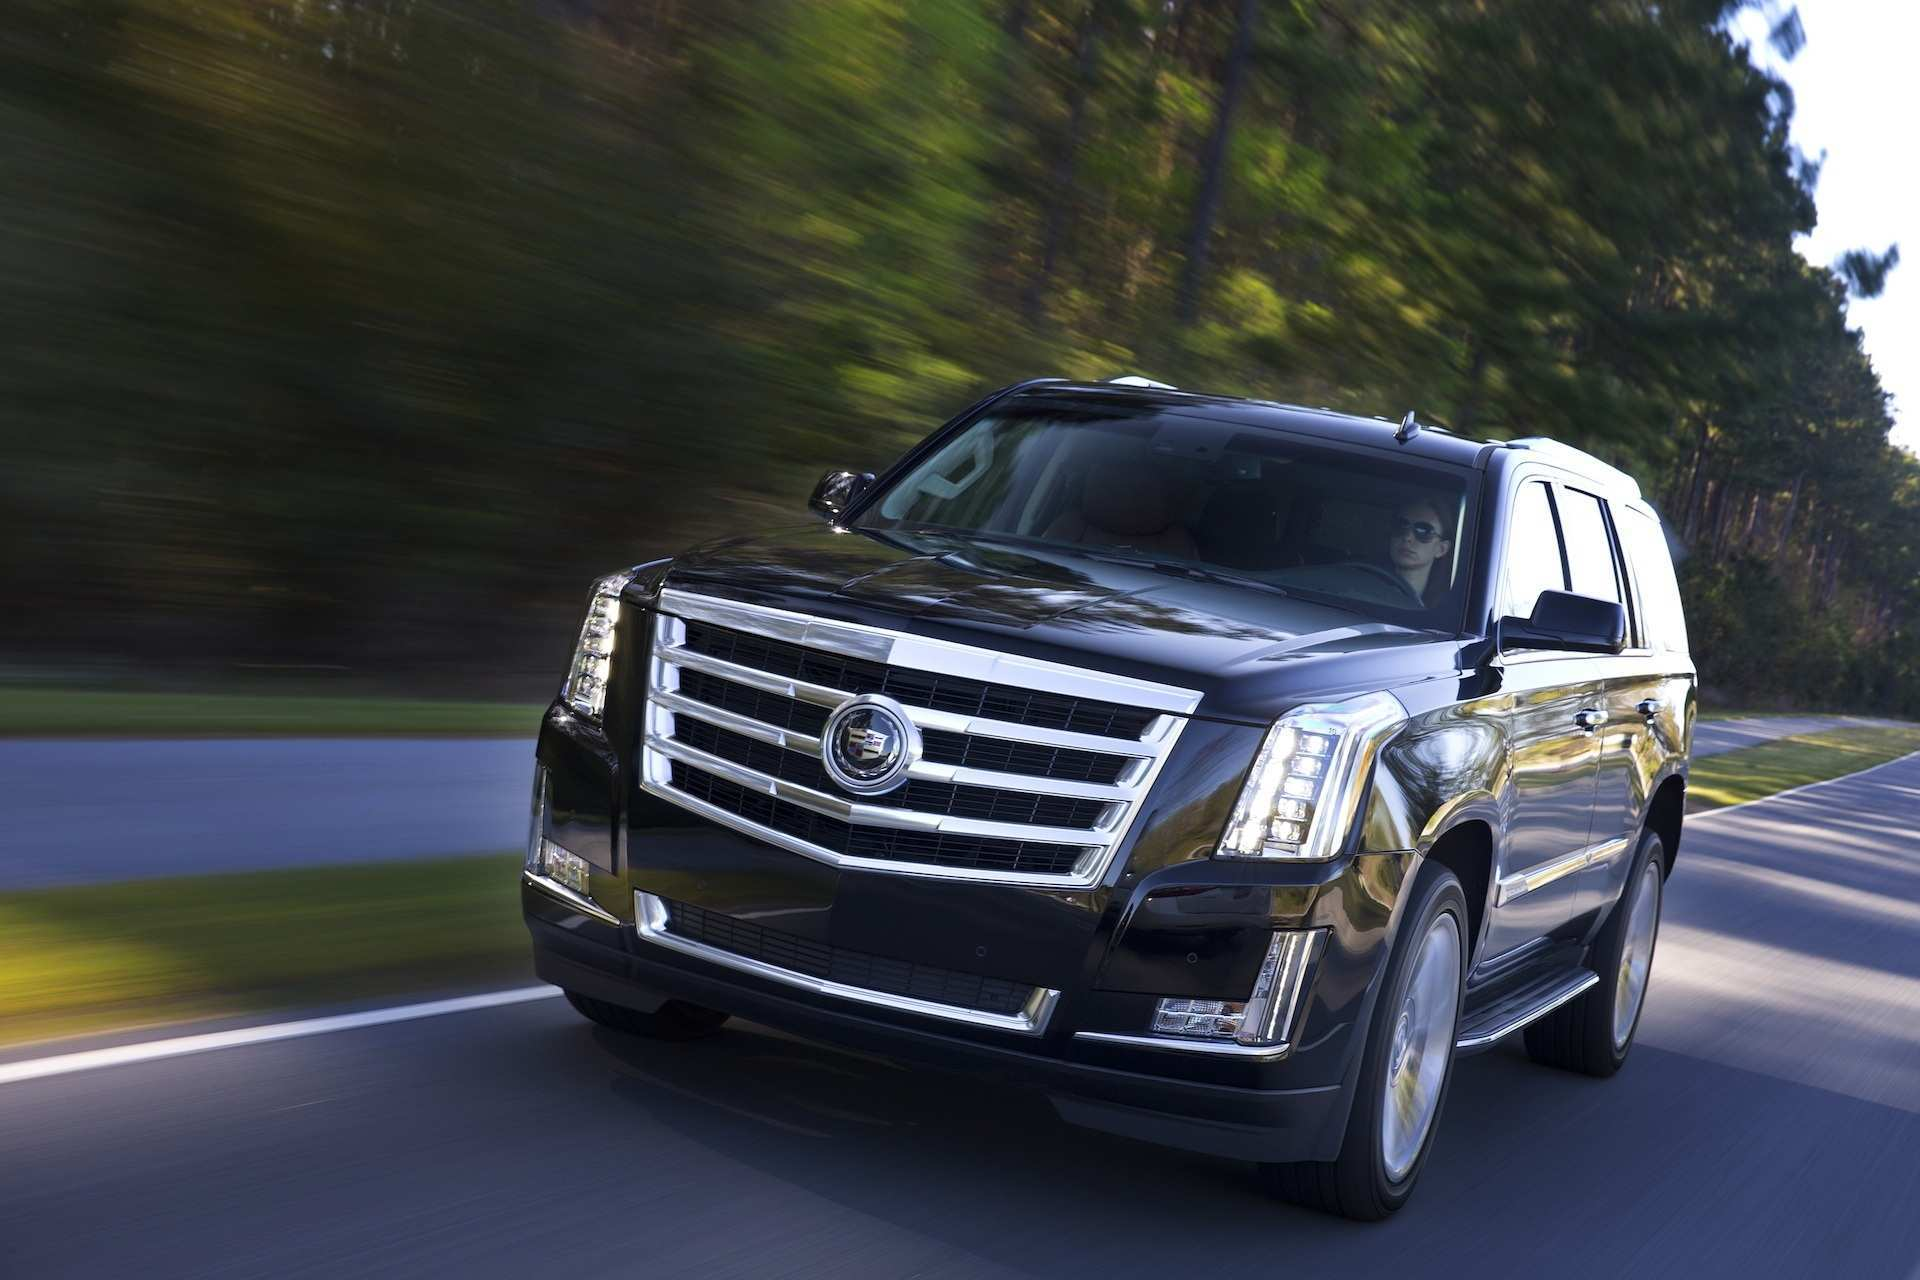 73 All New 2019 Cadillac Escalade V Ext Esv Specs And Review